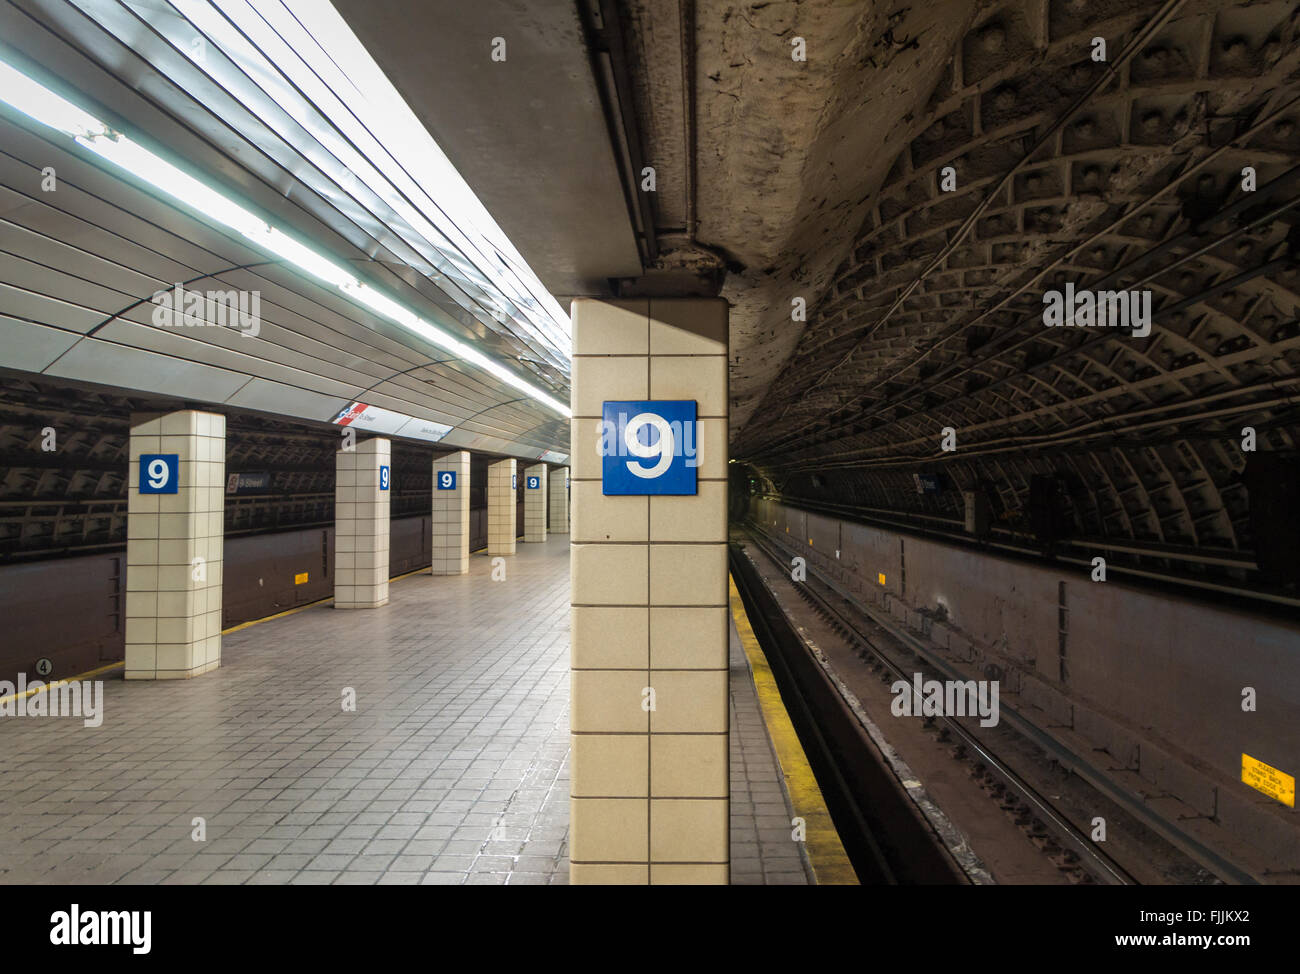 Interior of 9th Street PATH underground subway station in New York City looking along the platform and train tracks - Stock Image